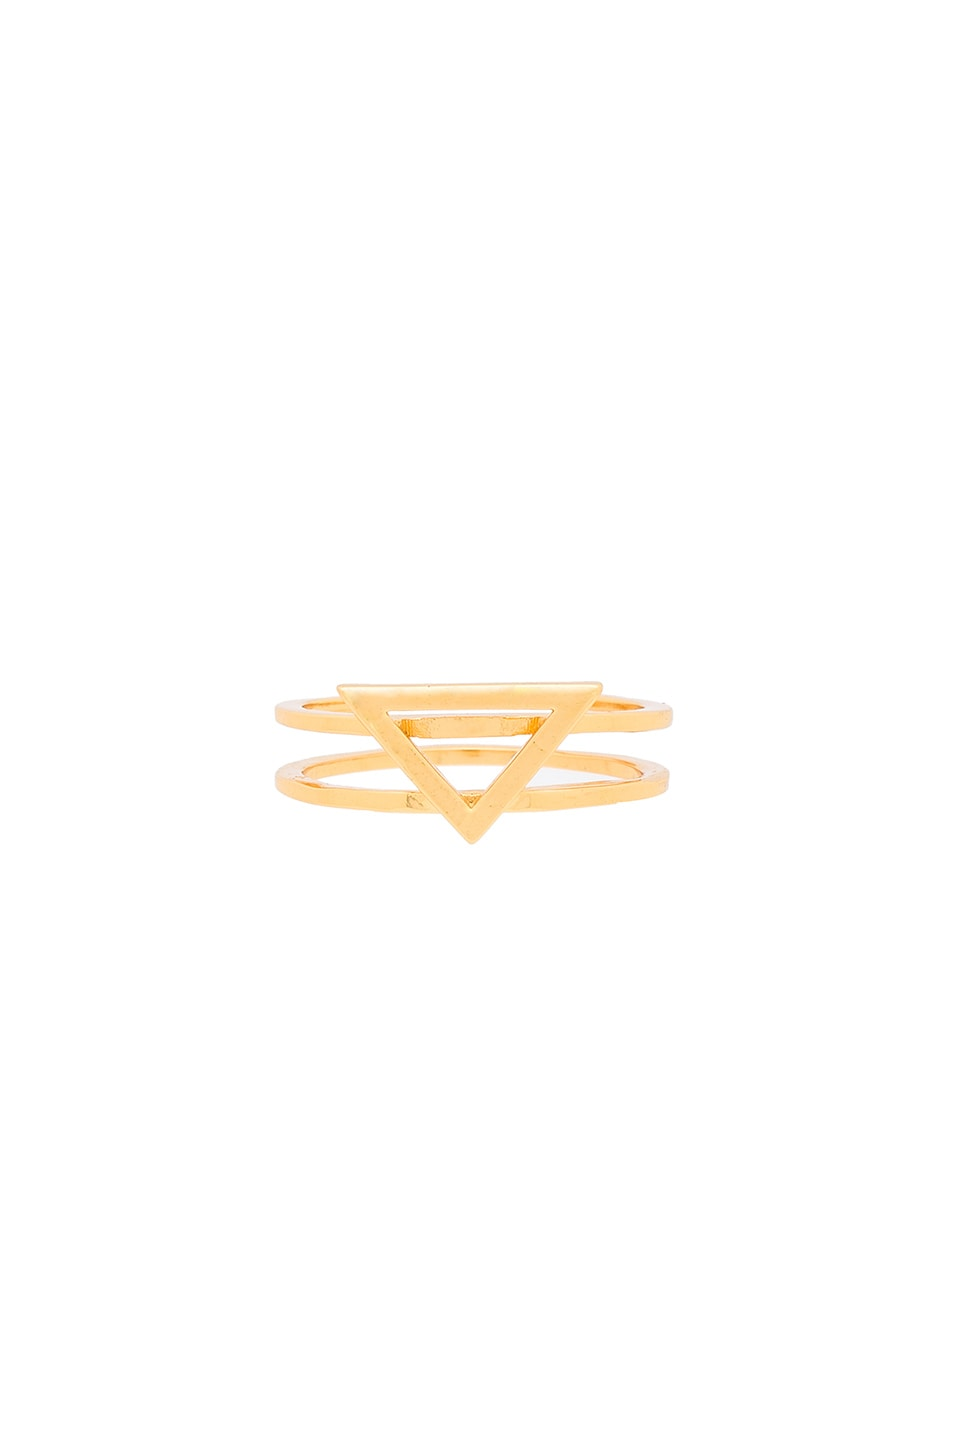 gorjana Anya Triangle Ring in Gold